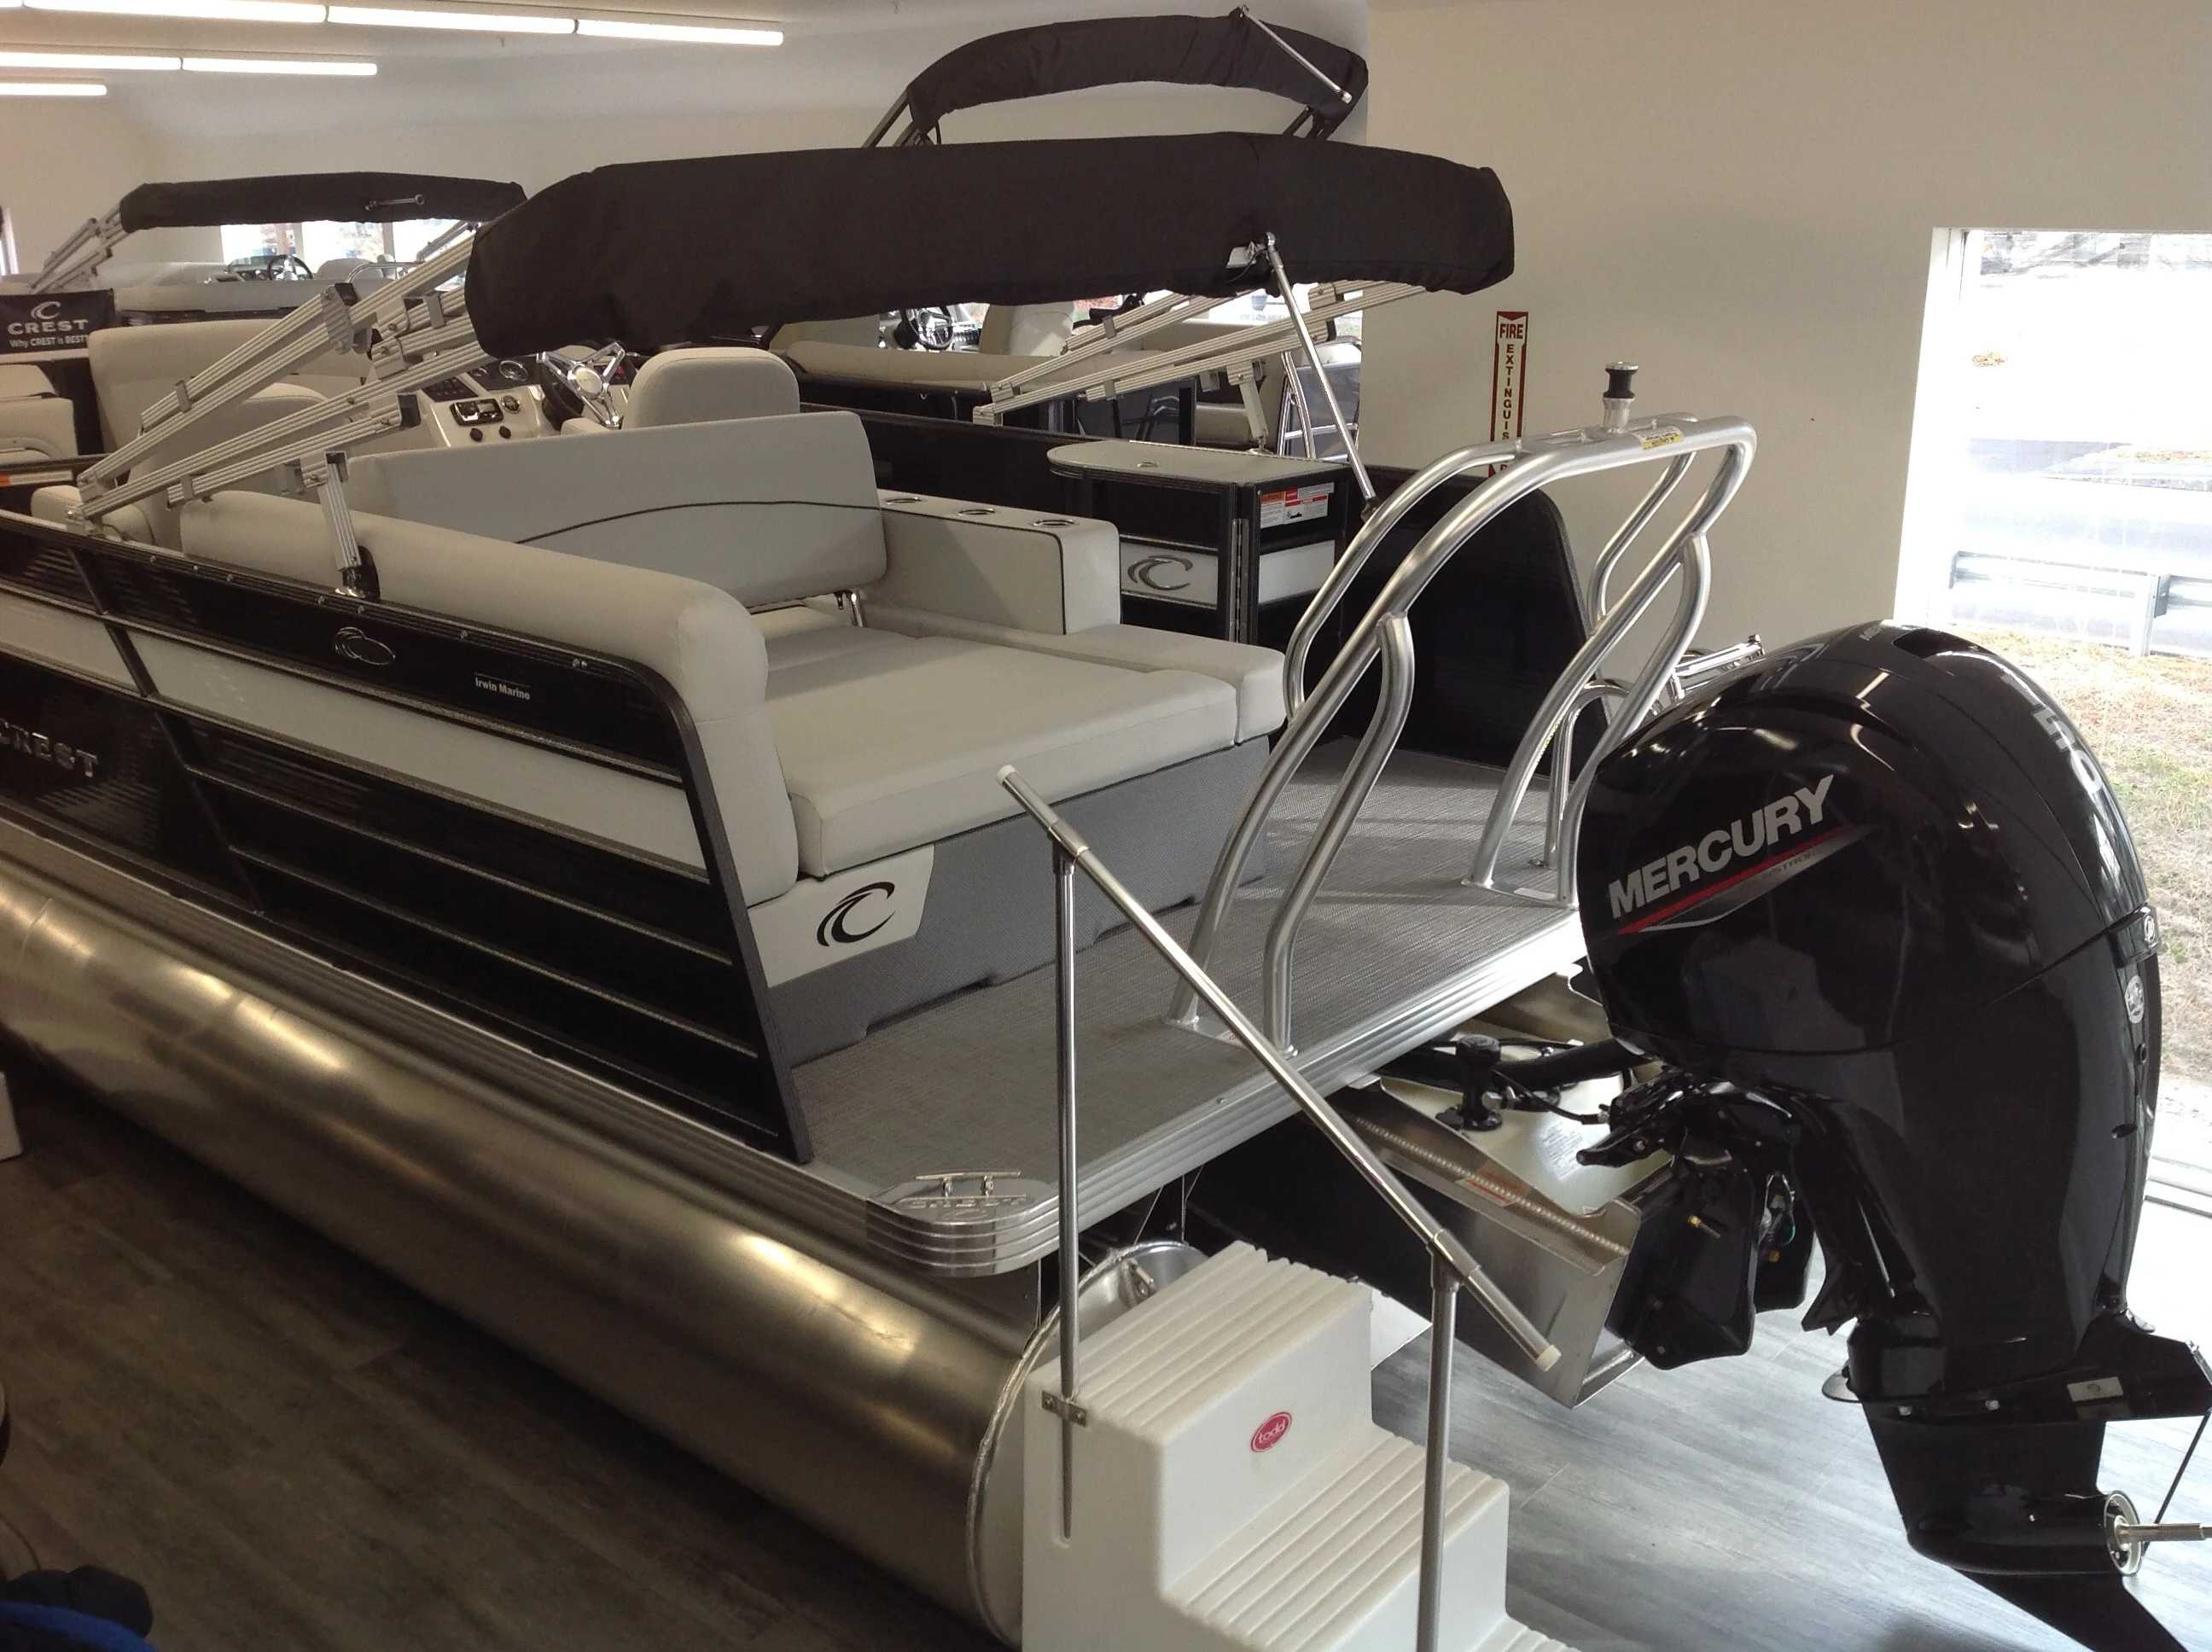 2021 Crest boat for sale, model of the boat is Cl Lx 220slsc & Image # 12 of 13